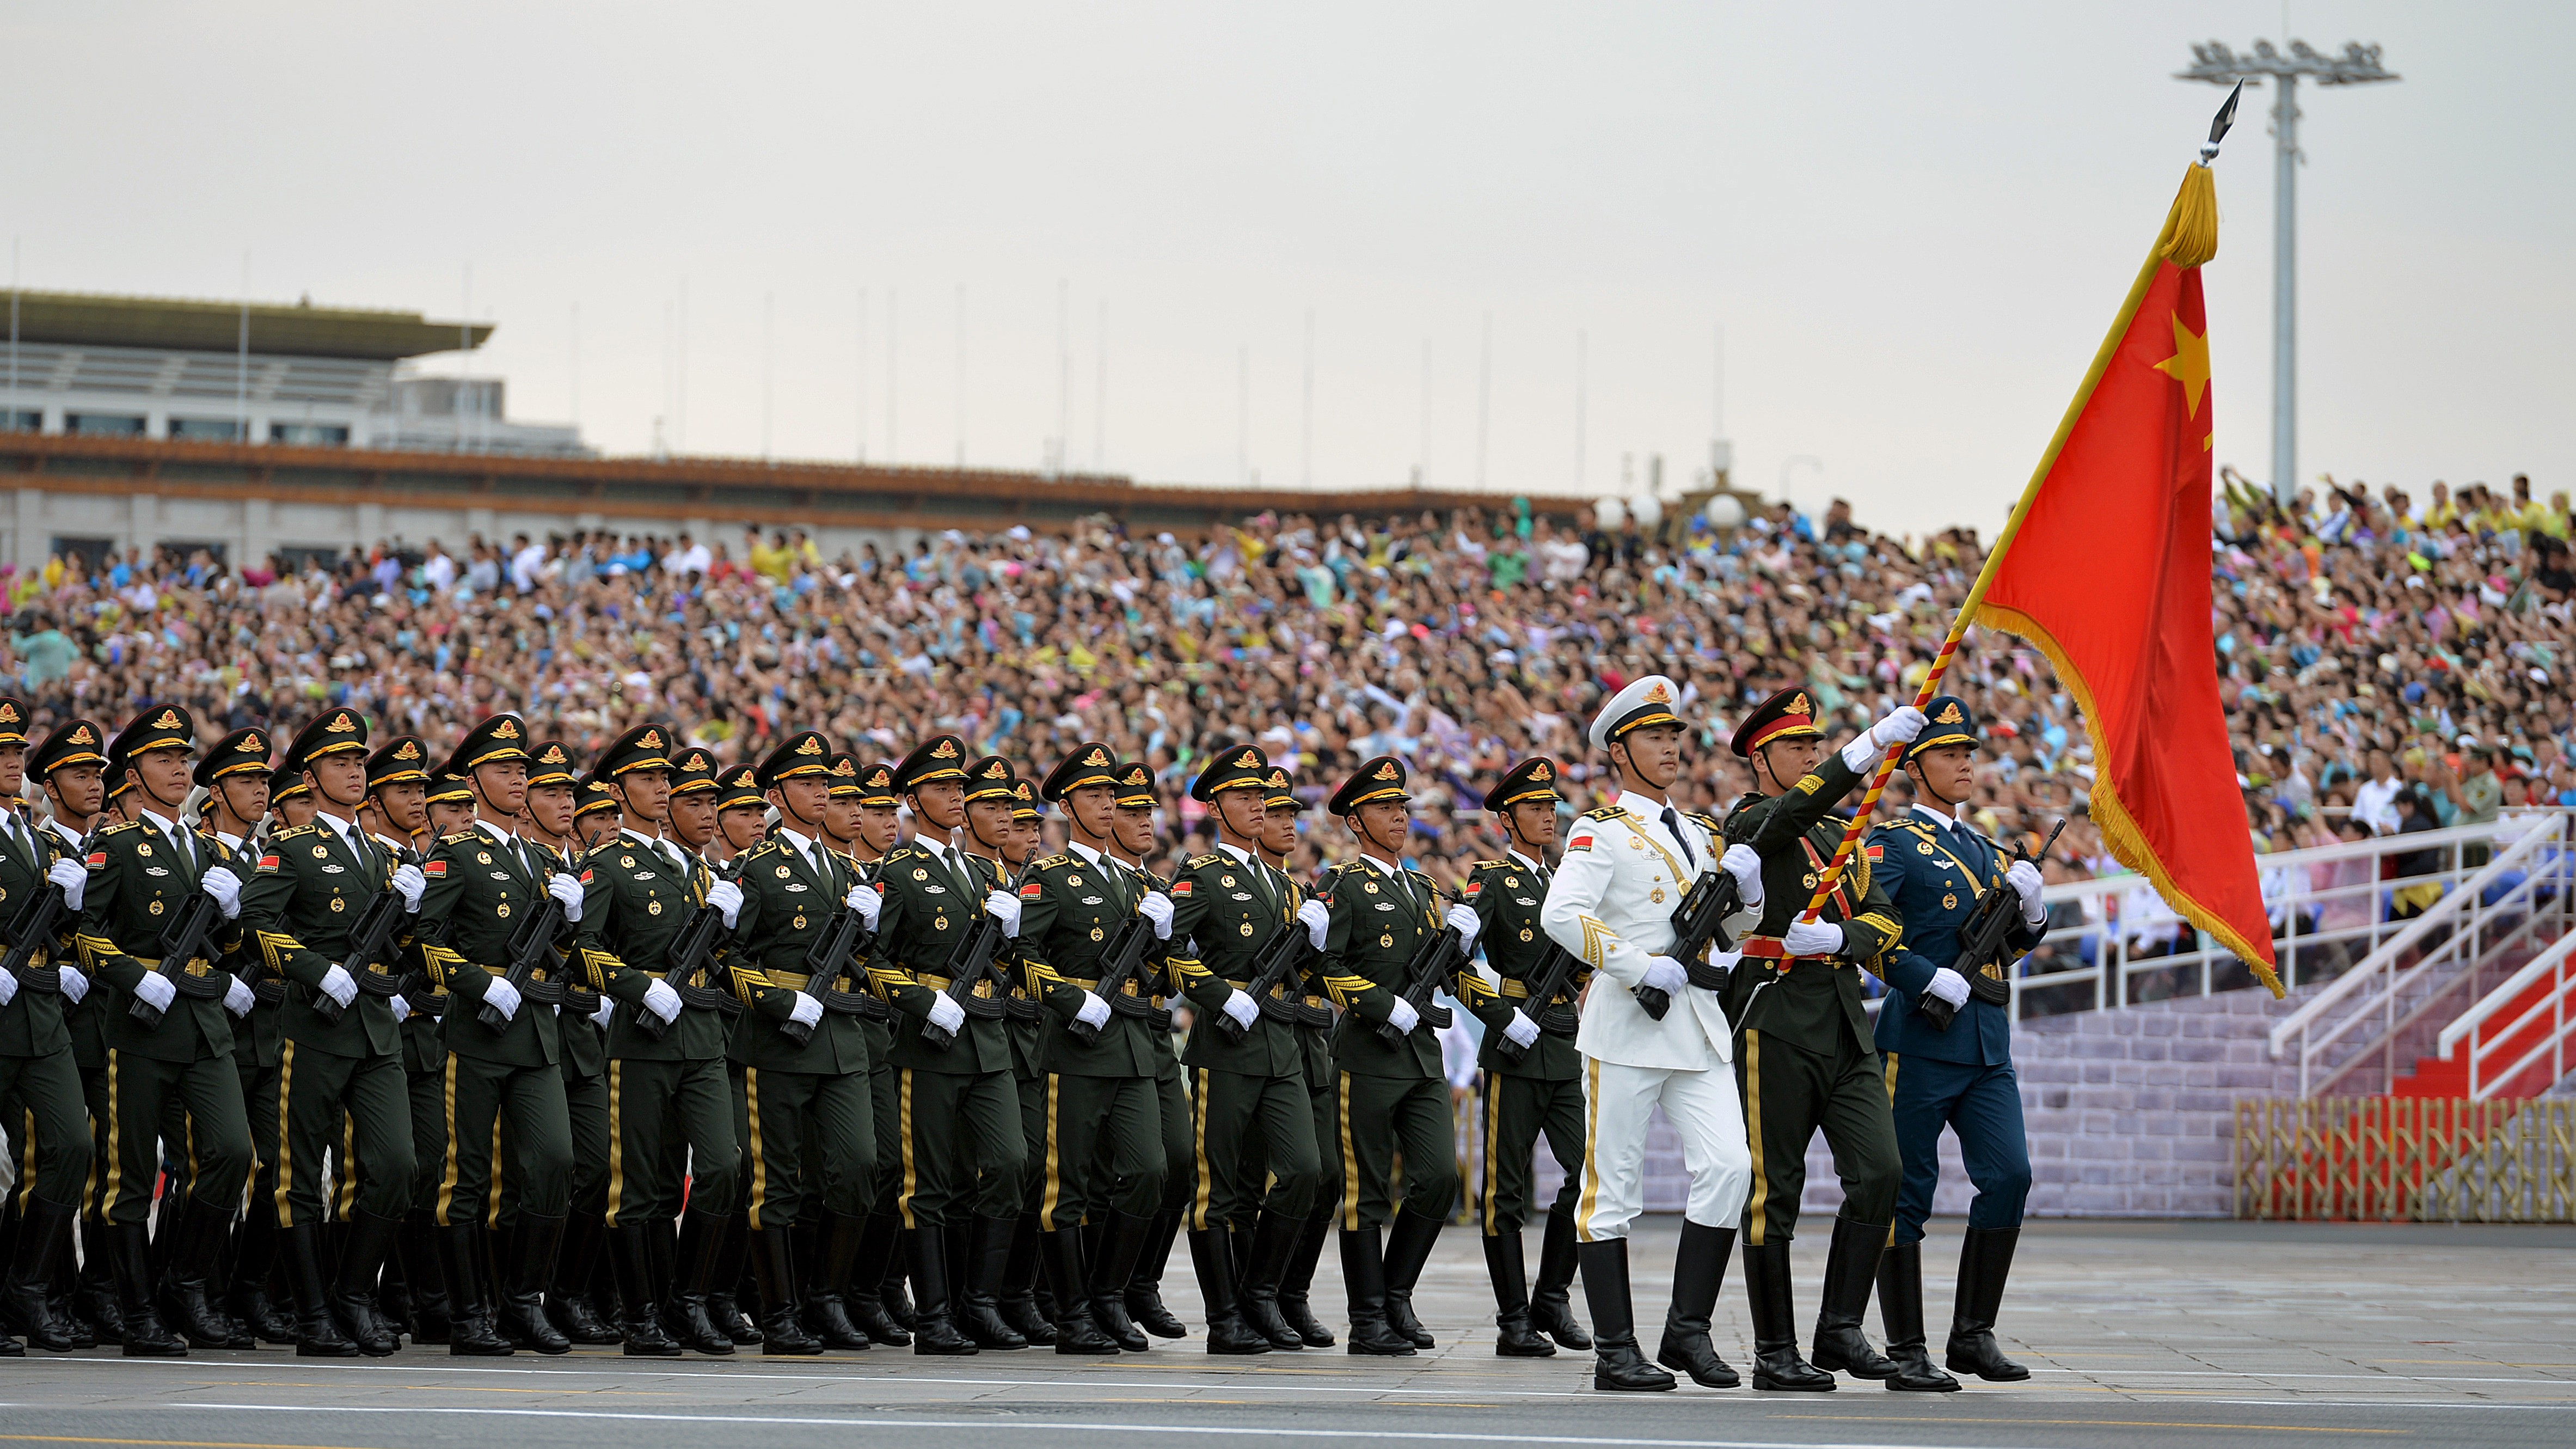 Soldiers of China's People's Liberation Army (PLA) march during a rehearsal for a military parade in Beijing, August 23, 2015. Troops from at least 10 countries including Russia and Kazakhstan will join an unprecedented military parade in Beijing next month to commemorate China's victory over Japan during World War Two, Chinese officials said. The parade on Sept. 3 will involve about 12,000 Chinese troops and 200 aircraft, Qi Rui, deputy director of the government office organizing the parade, told reporters in Beijing on Friday.